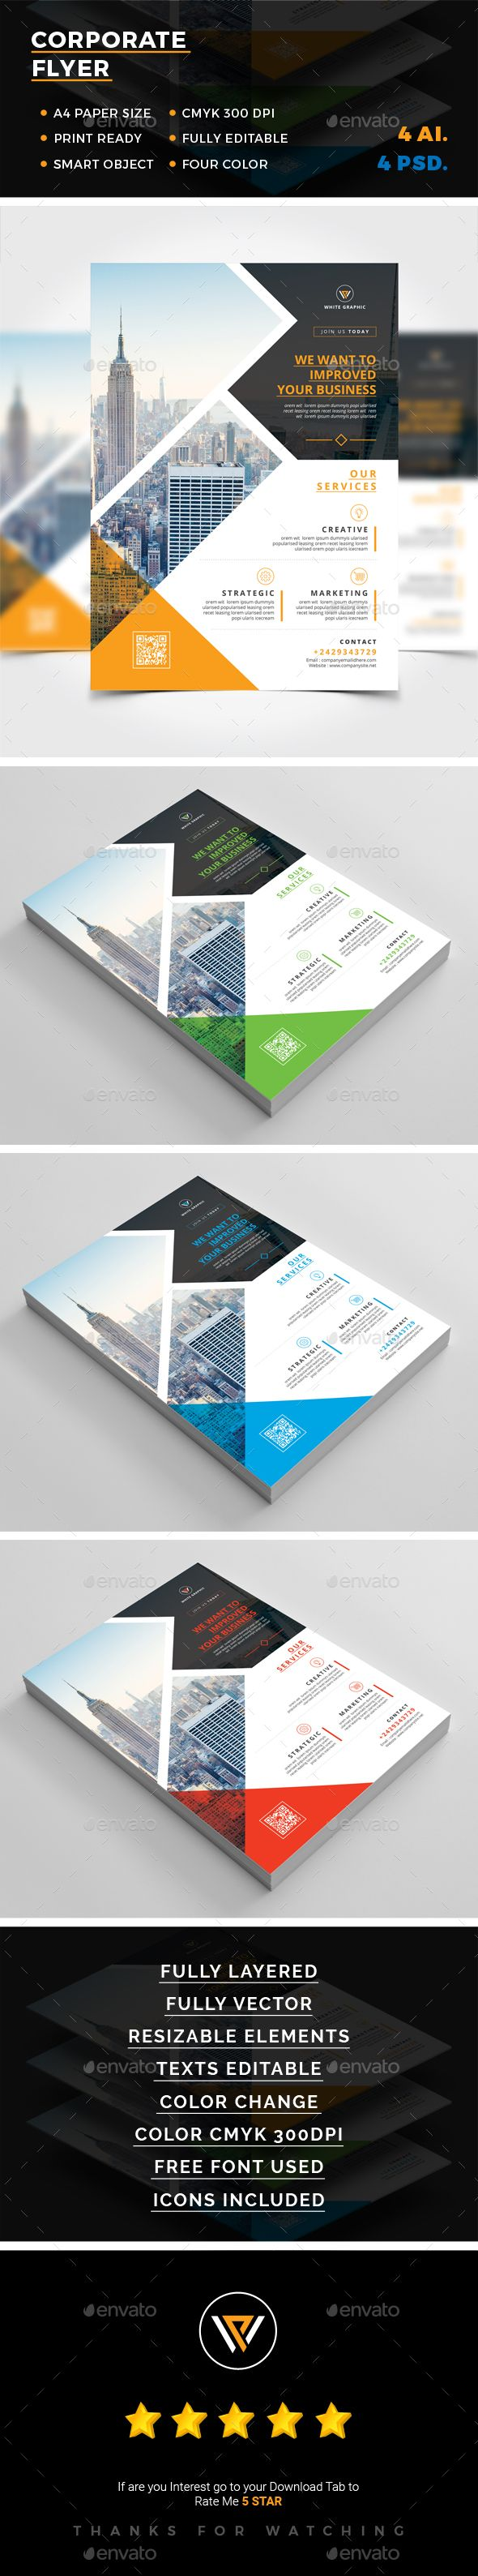 Corporate Flyer Template PSD, Vector EPS